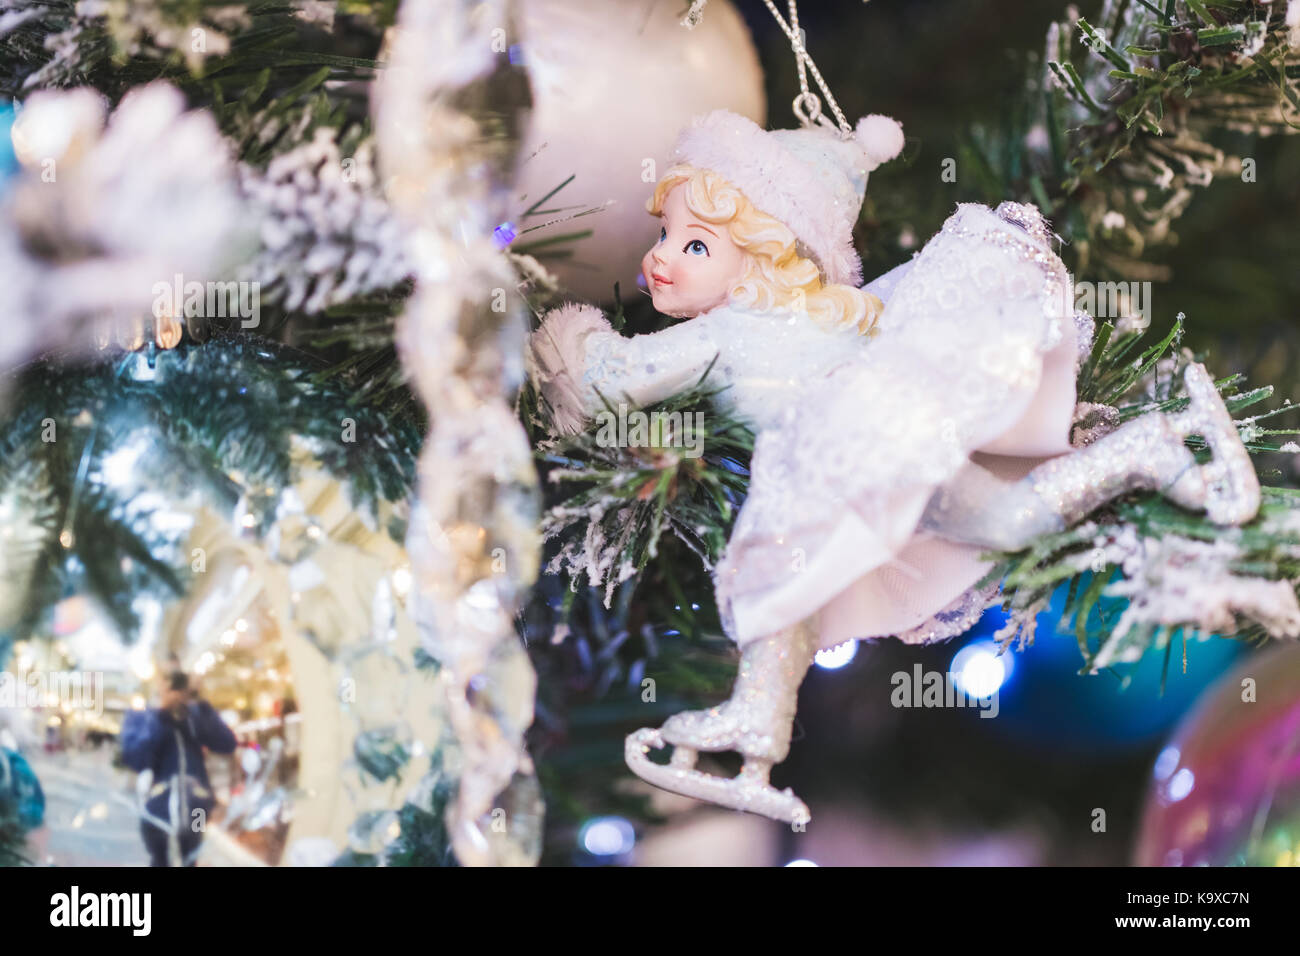 Small toy Snow Maiden in white snow dress as decoration of Christmas tree - Stock Image